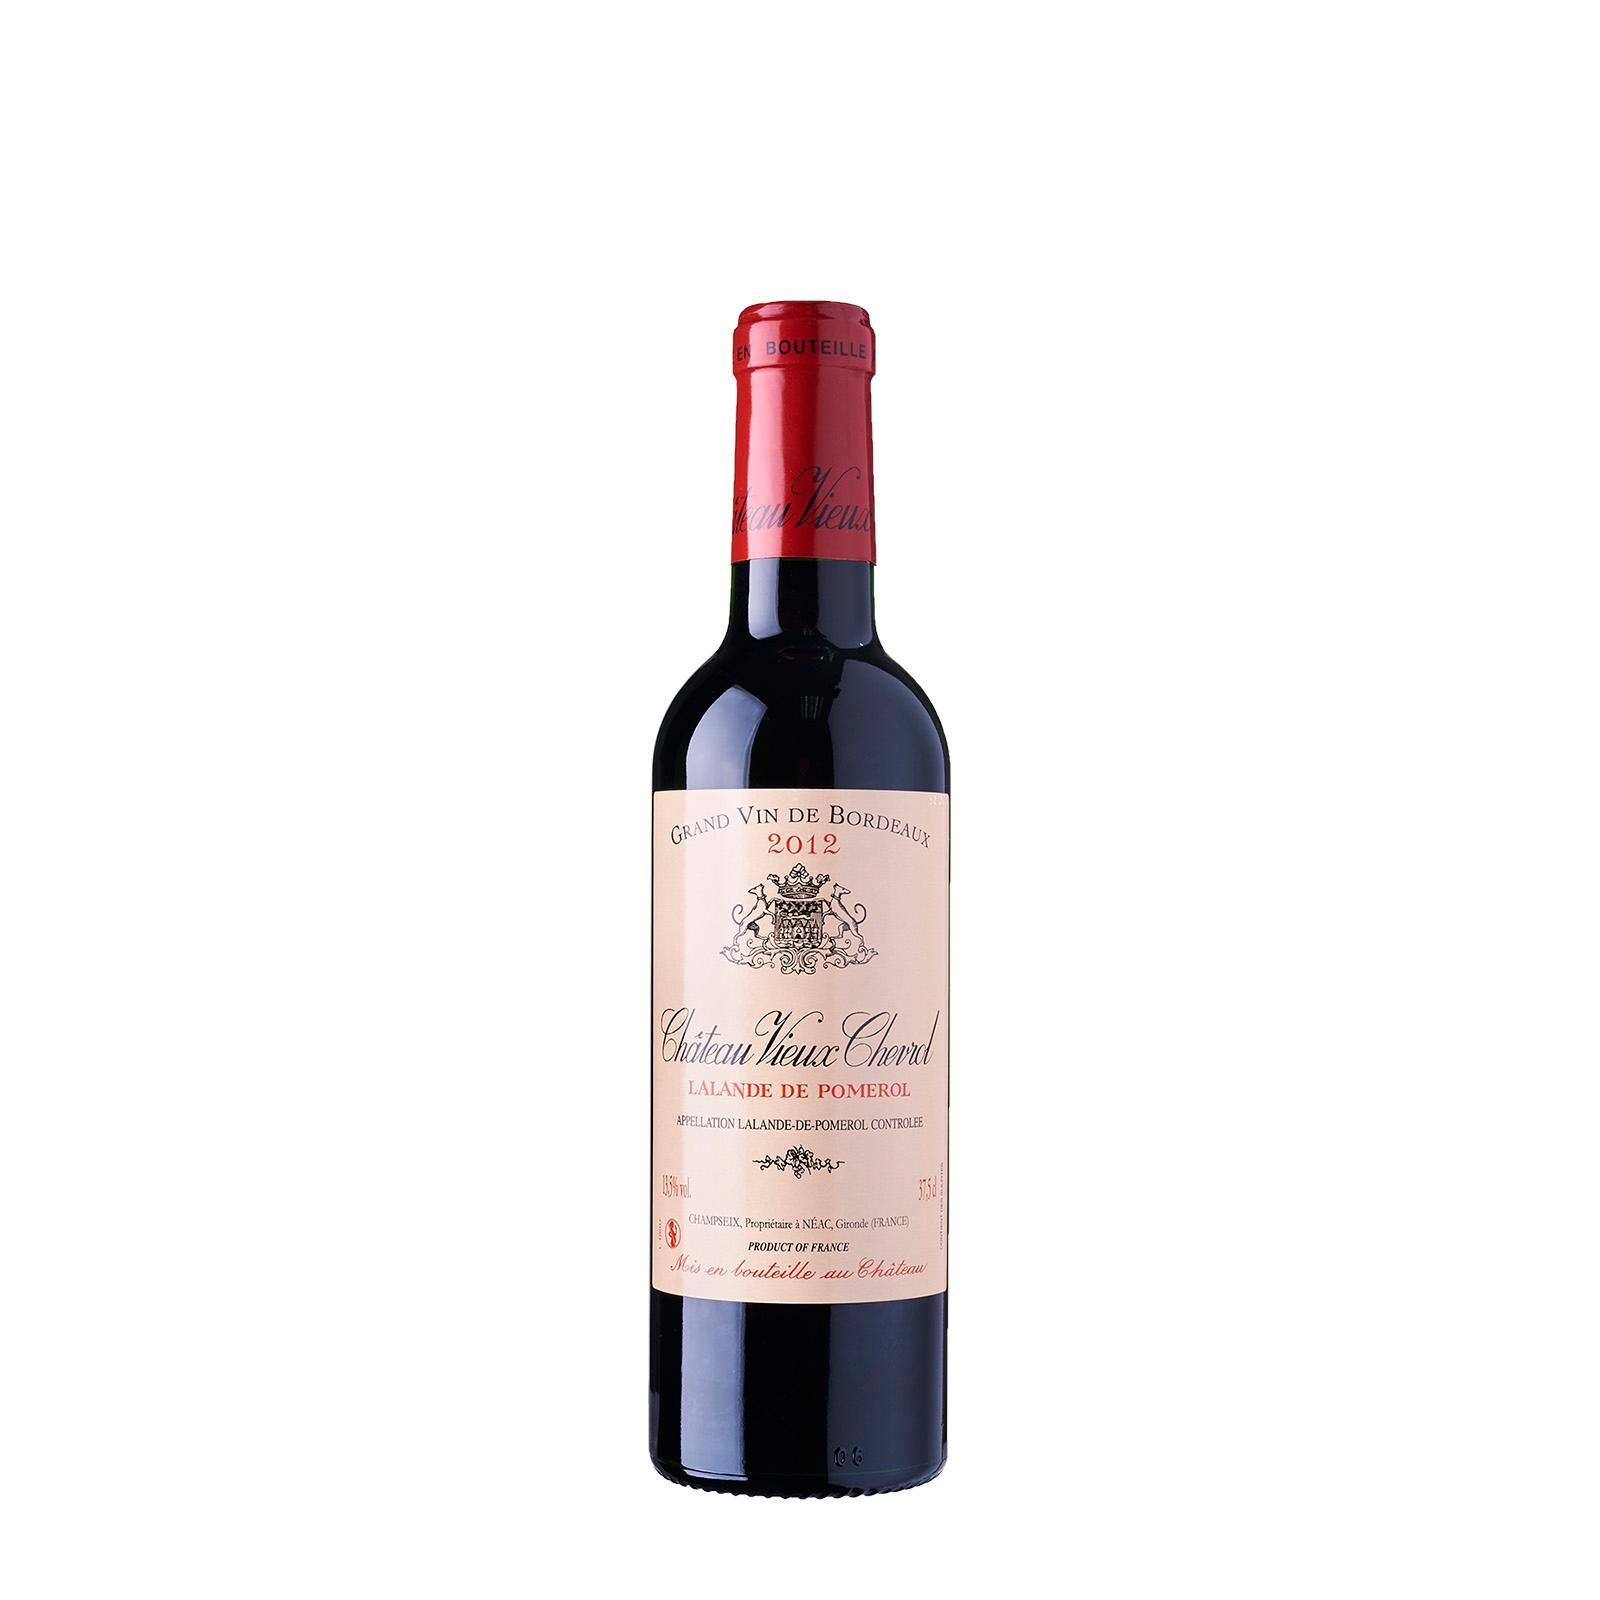 Chateau Vieux Chevrol Lalande De Pomerol France Red Wine - By V Wine Studio